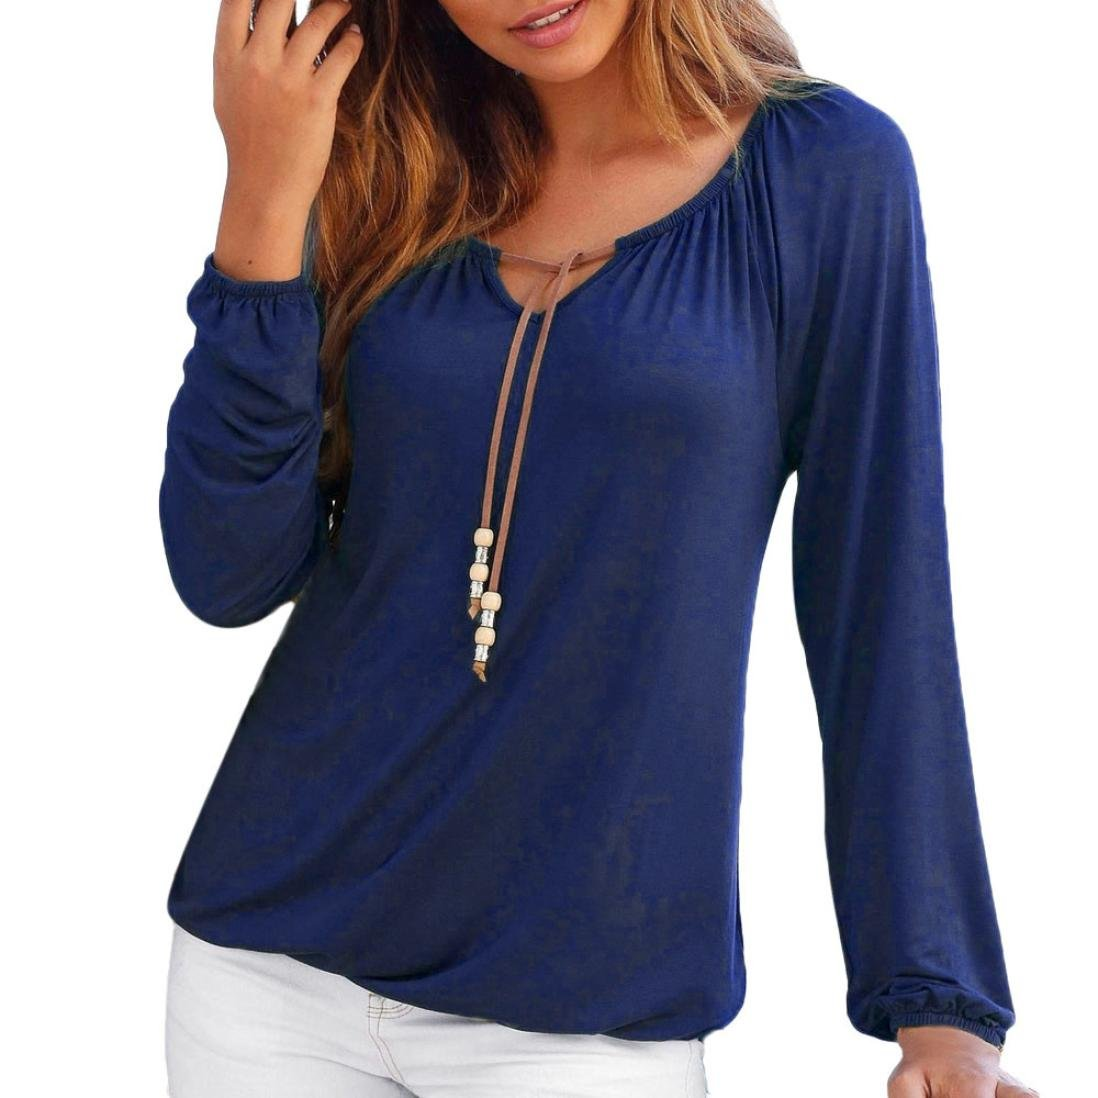 ♥ REYO [S-2XL] ♥ Womens Sweatshirt V-Neck Solid Bowknot Long Sleeve Pullover Casual T-Shirt Blouse Tops